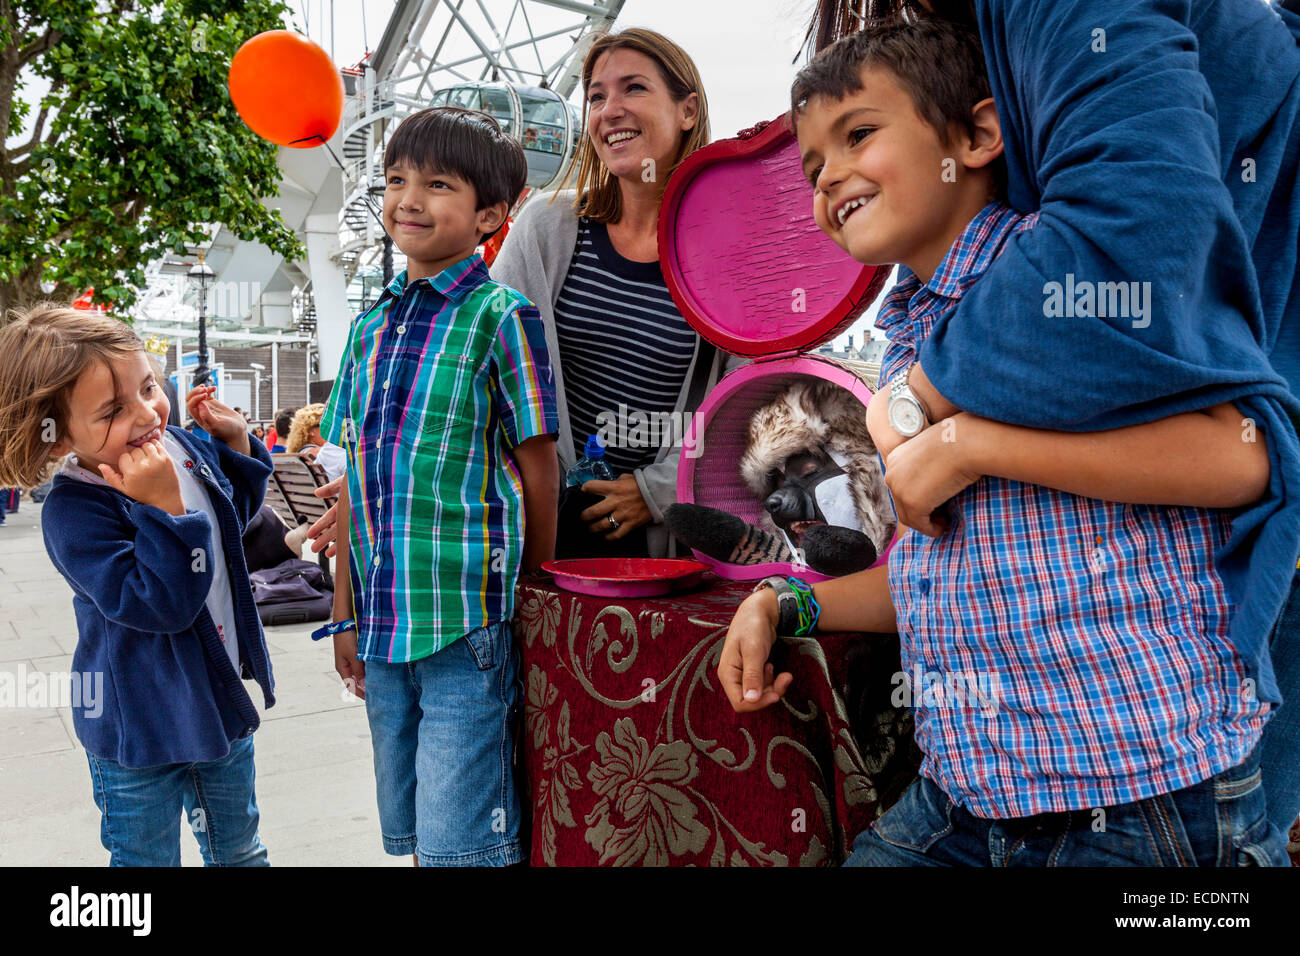 Une famille pose avec un artiste de rue au South Bank, Londres, Angleterre Photo Stock